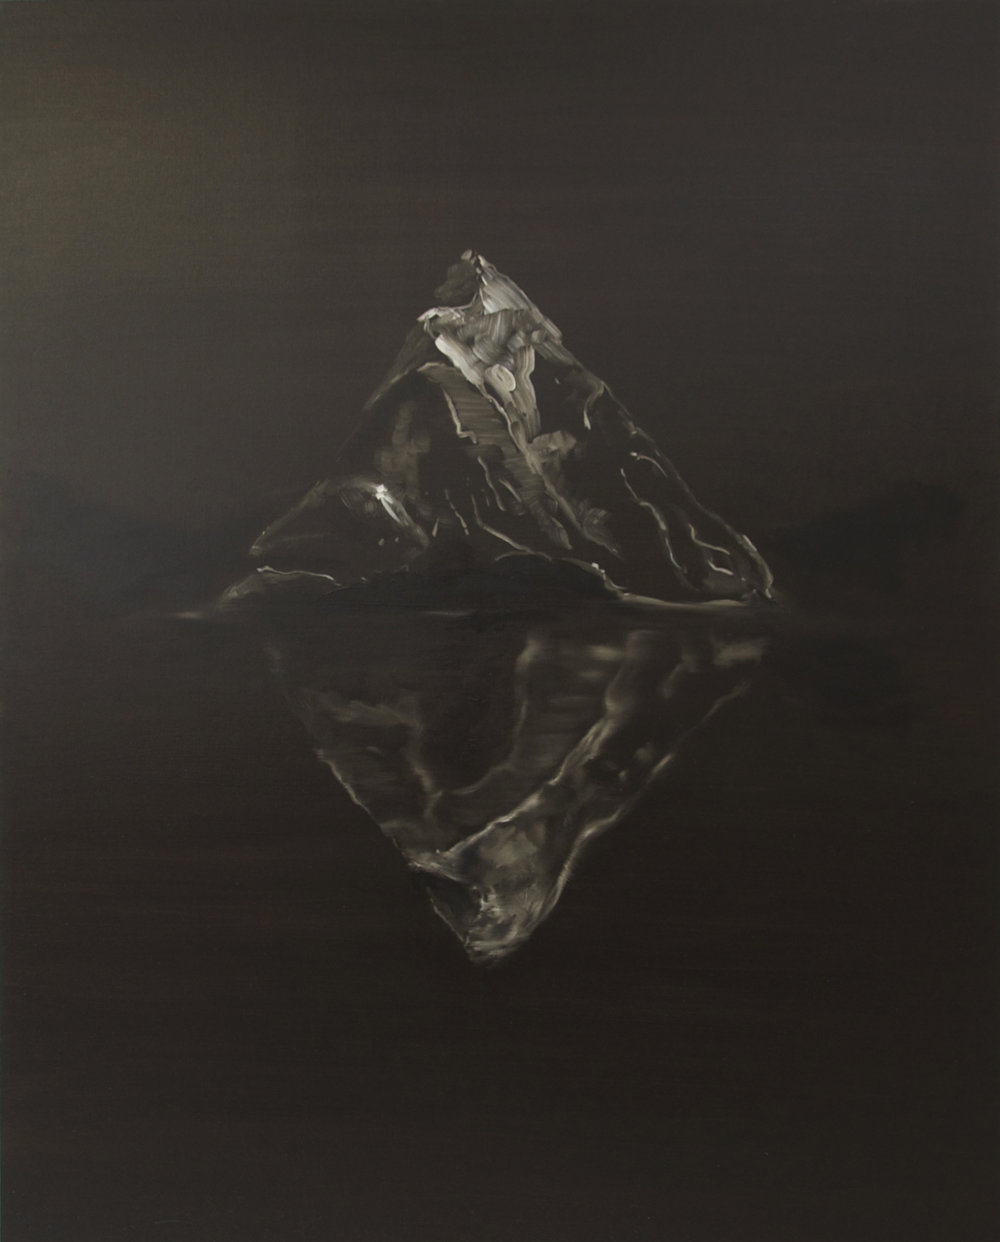 Stasis, 2013, Oil on canvas, 150 x 125 cm